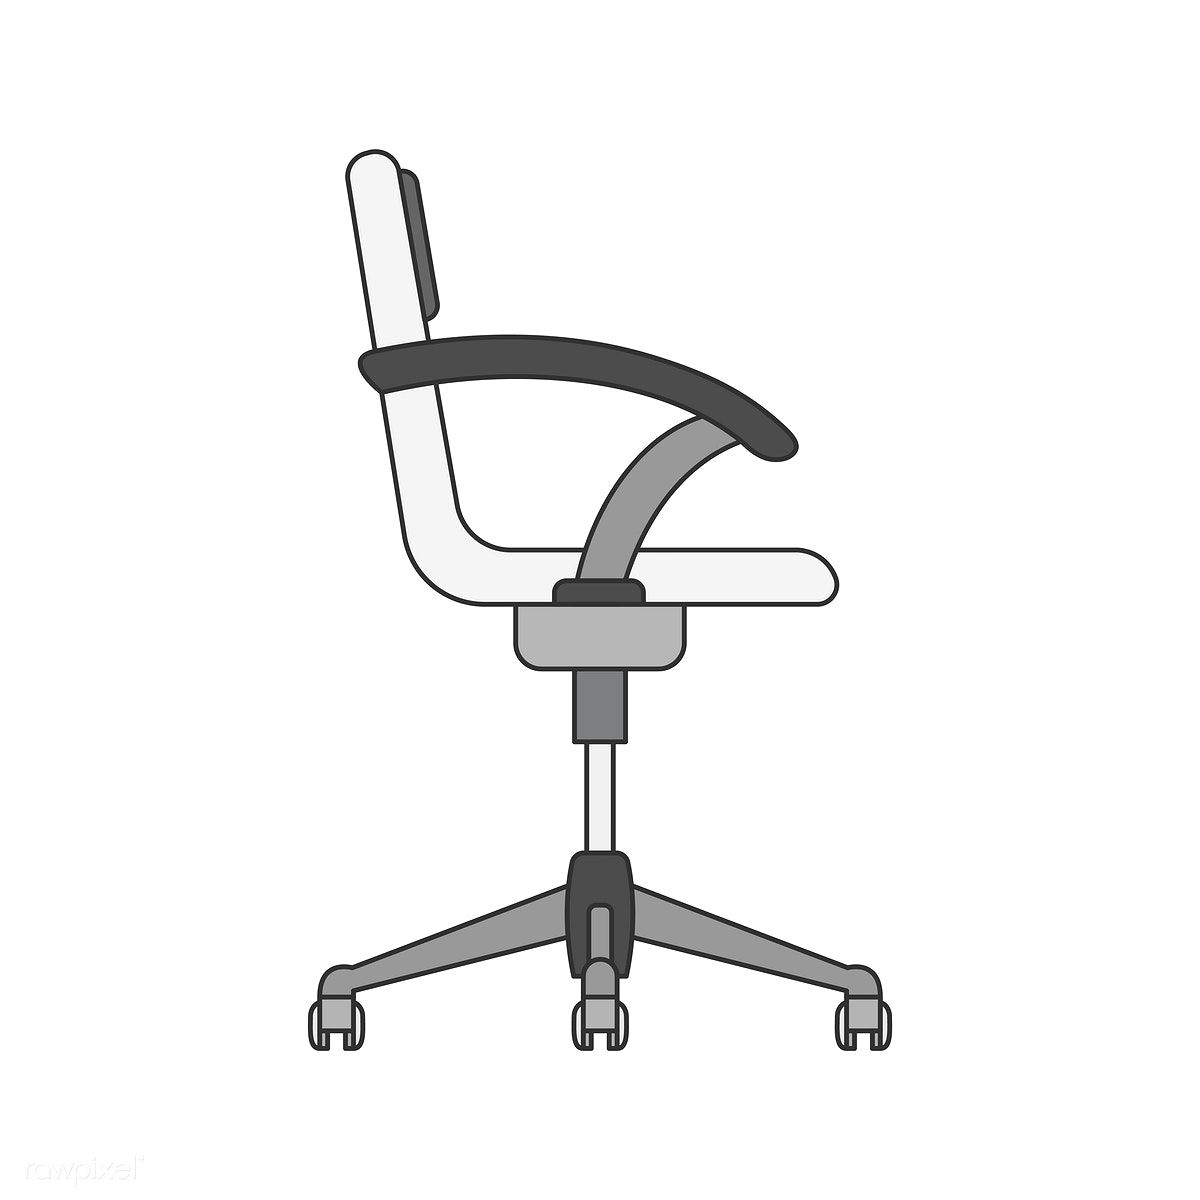 Illustration Of An Office Chair Free Image By Rawpixel Com In 2020 Office Chair Anime Decor My Little Pony Drawing